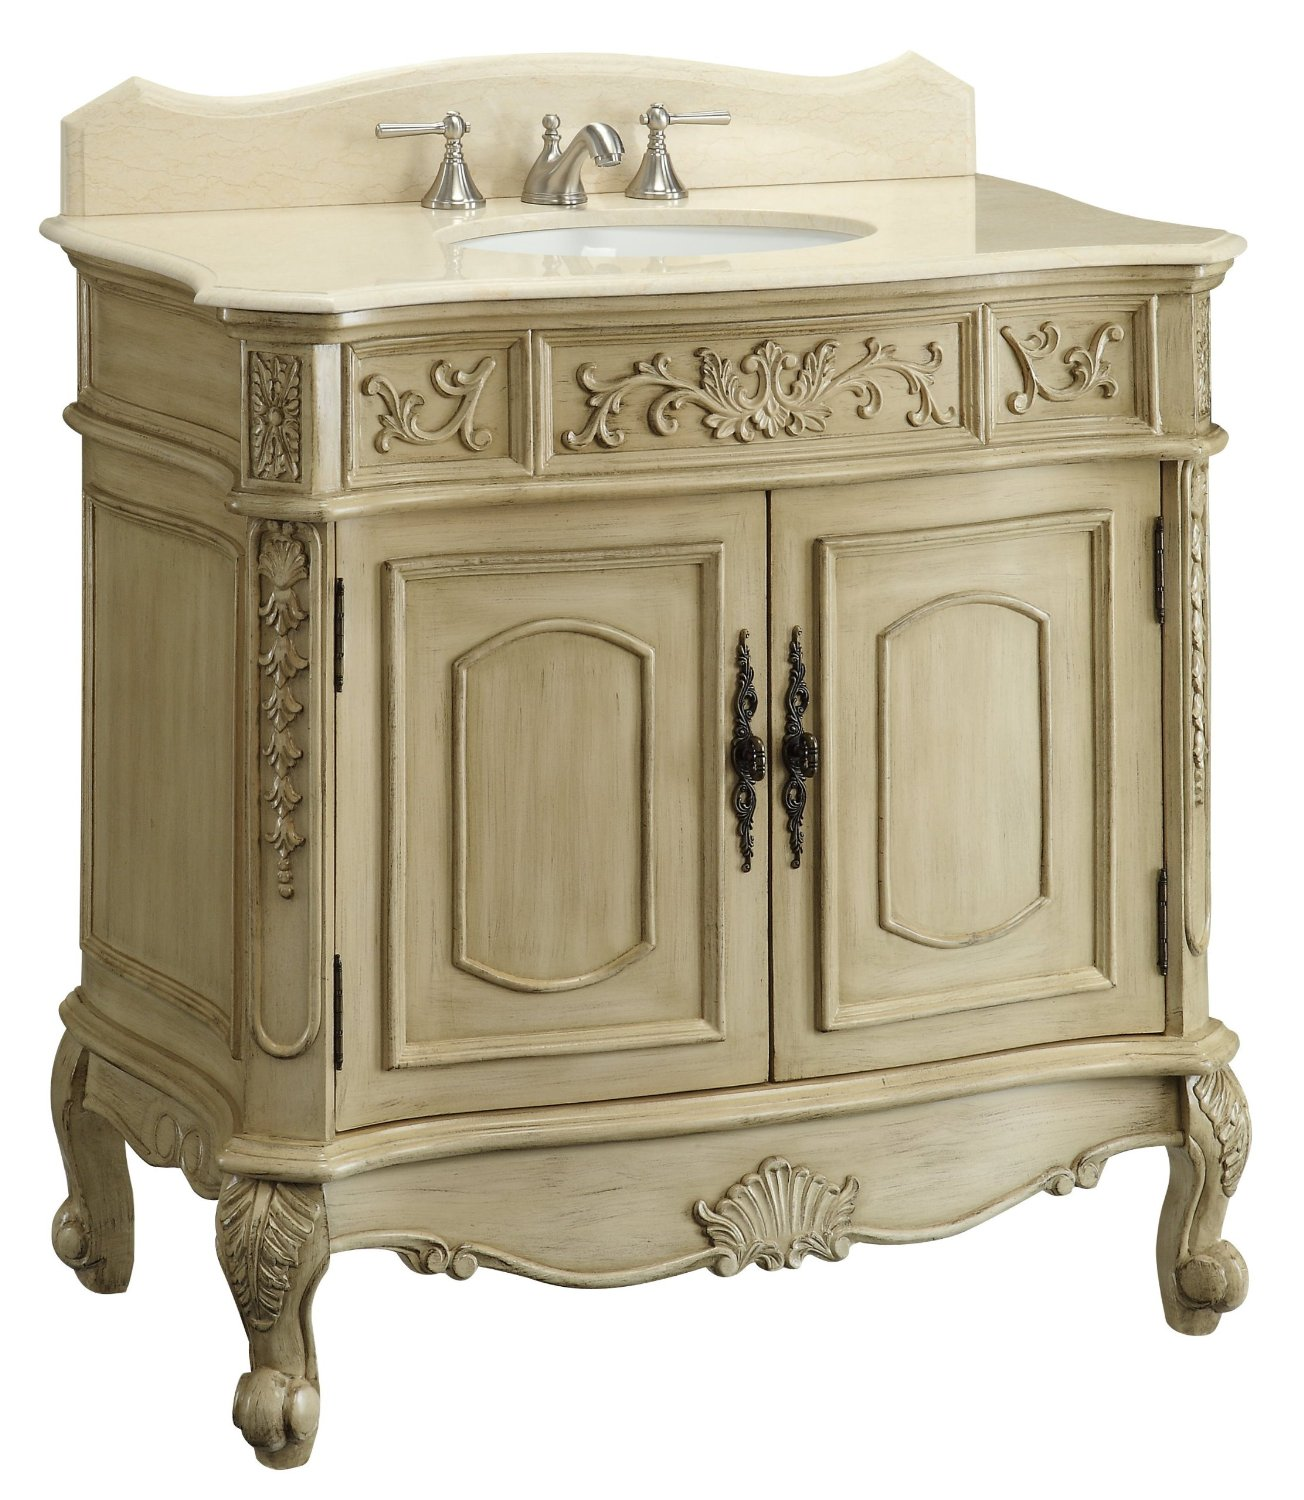 Adelina 37 inch unique antique bathroom vanity white for Bathroom vanity display for sale